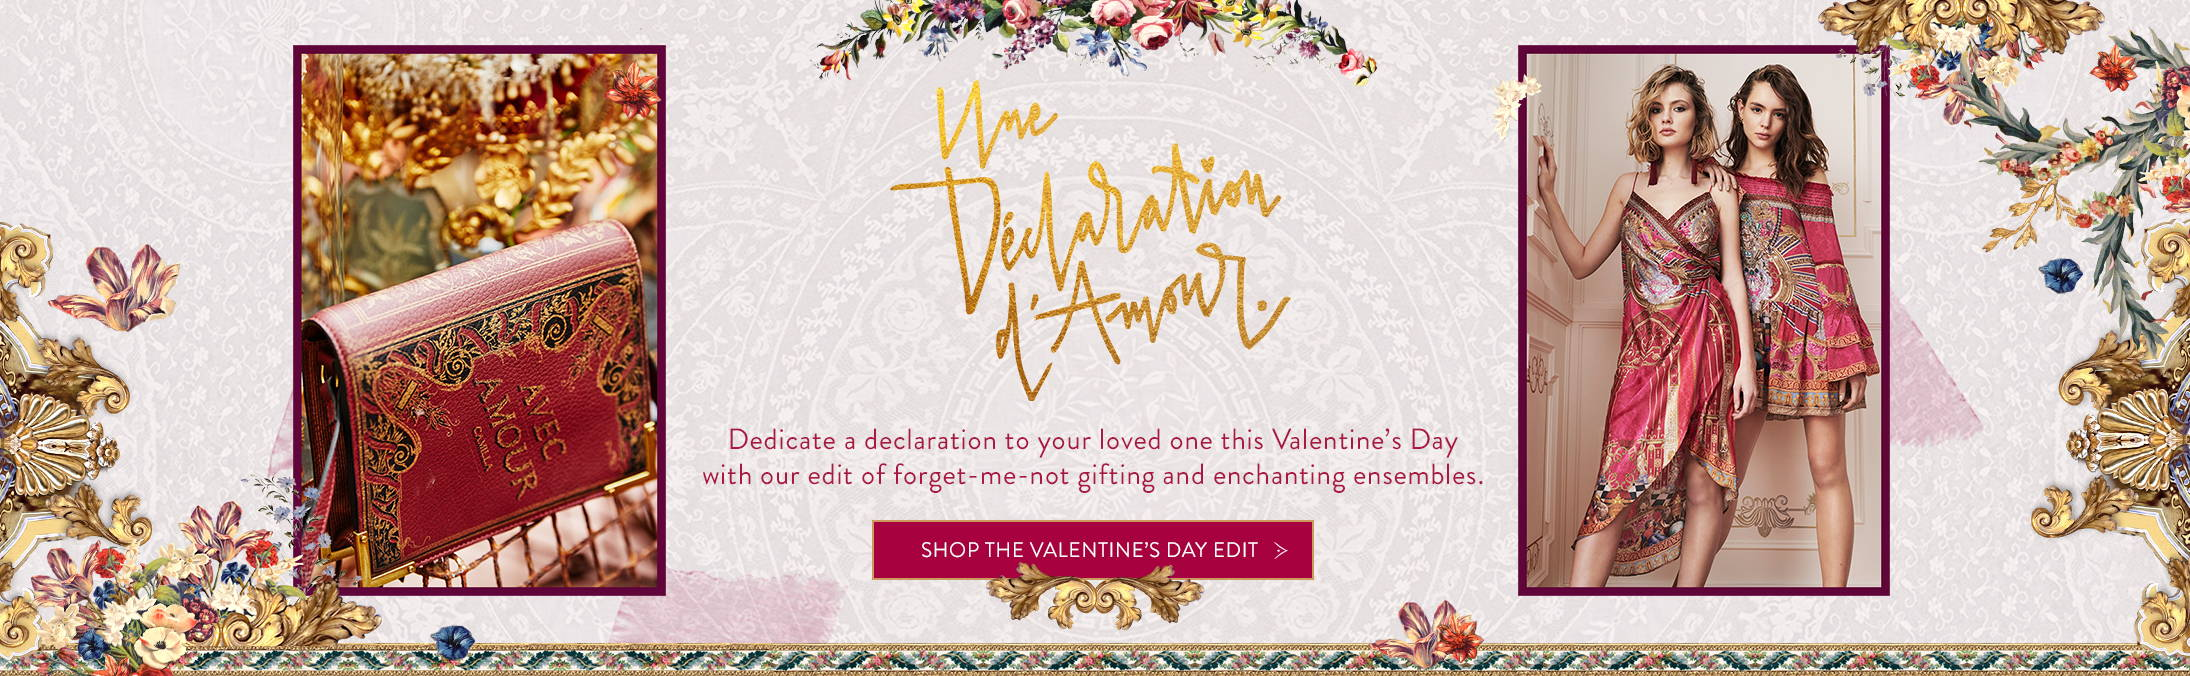 Shop The Valentine's Day Edit